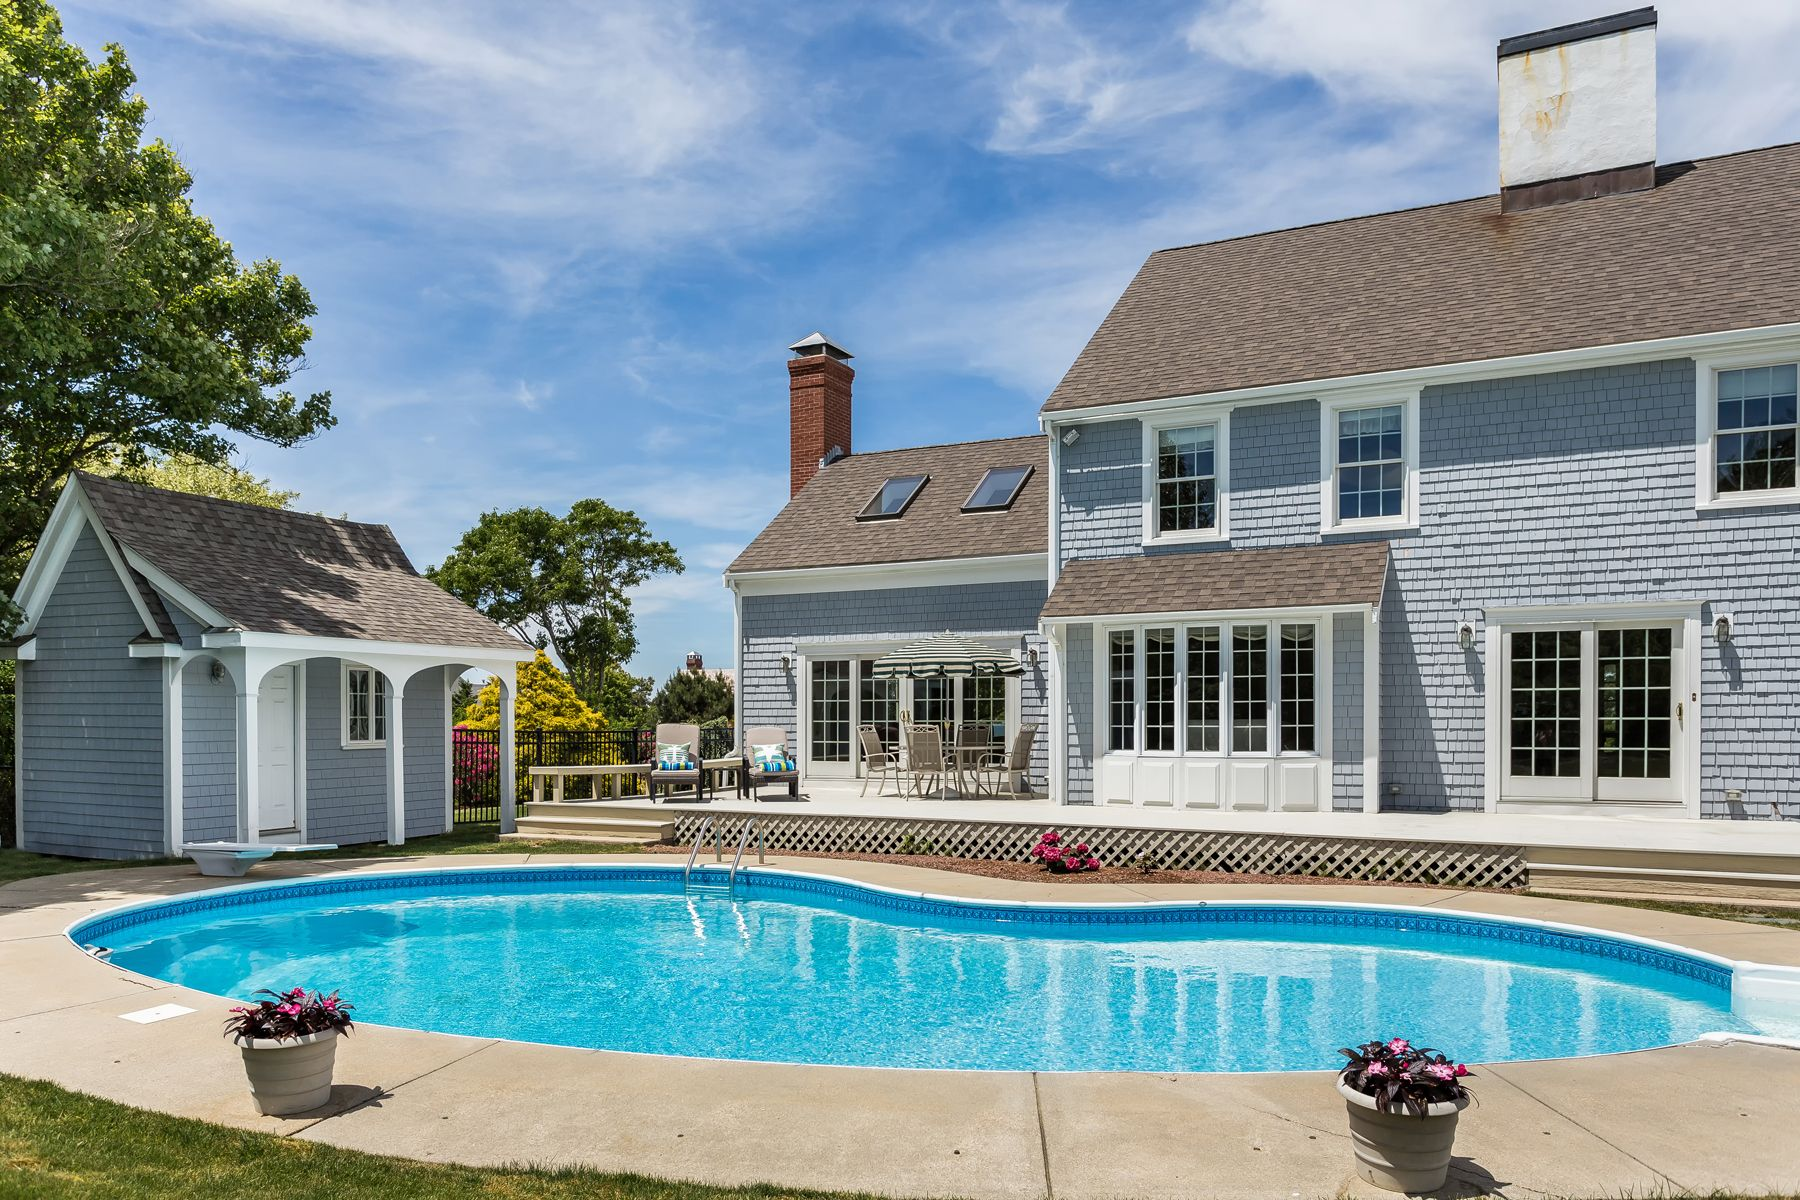 Single Family Homes for Sale at 40 Torrey Road East Sandwich, Massachusetts 02537 United States